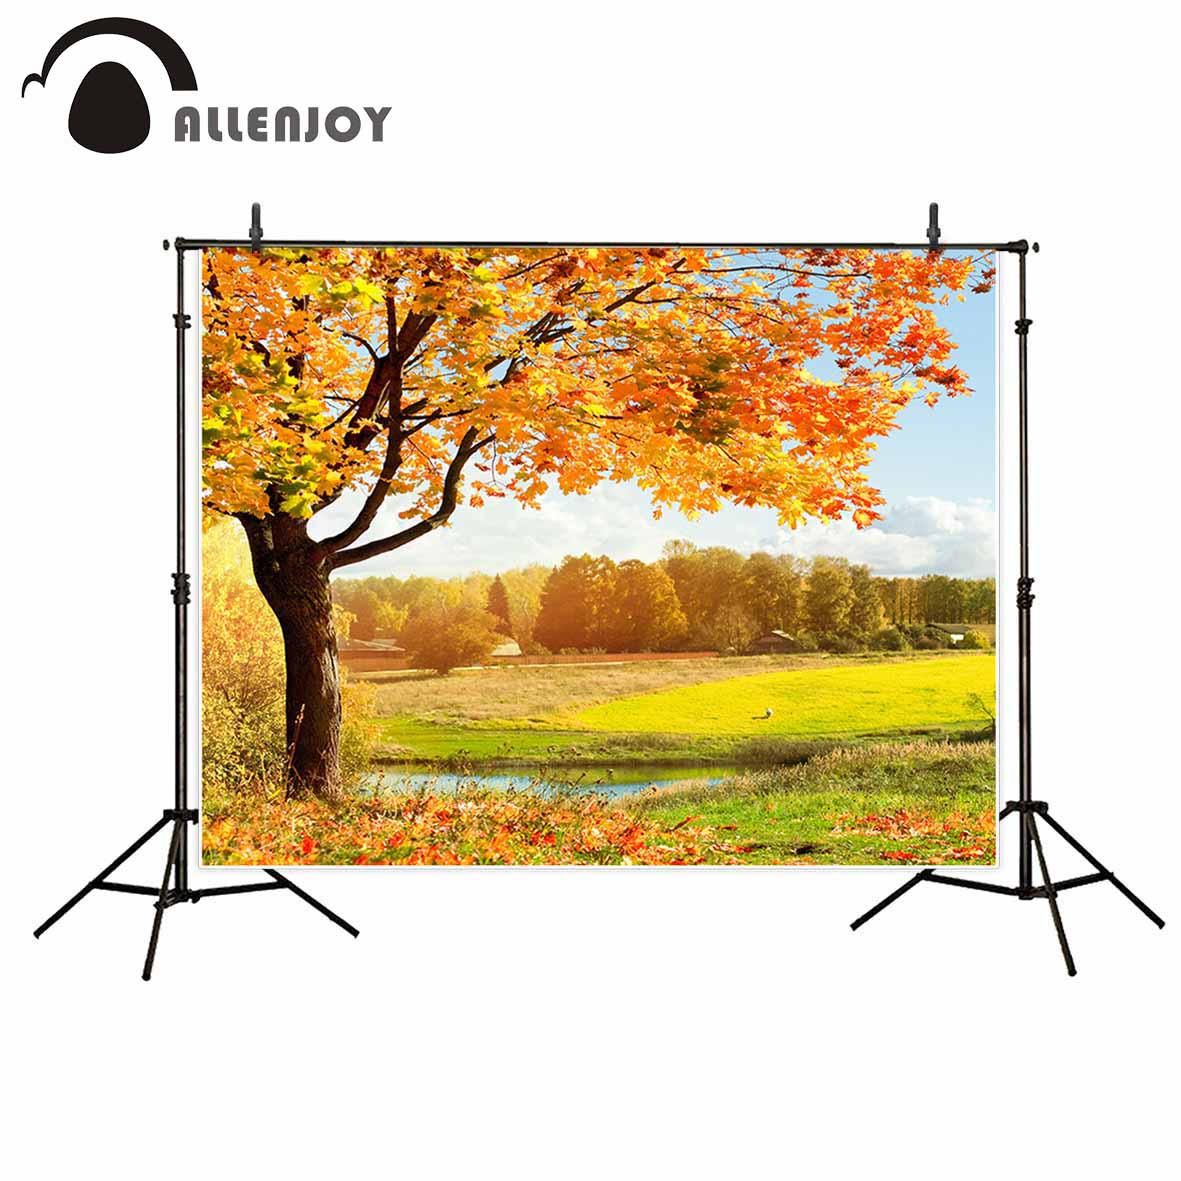 Allenjoy photographic background Autumn leaves Wonderland beautiful natural Photographic for study Photo